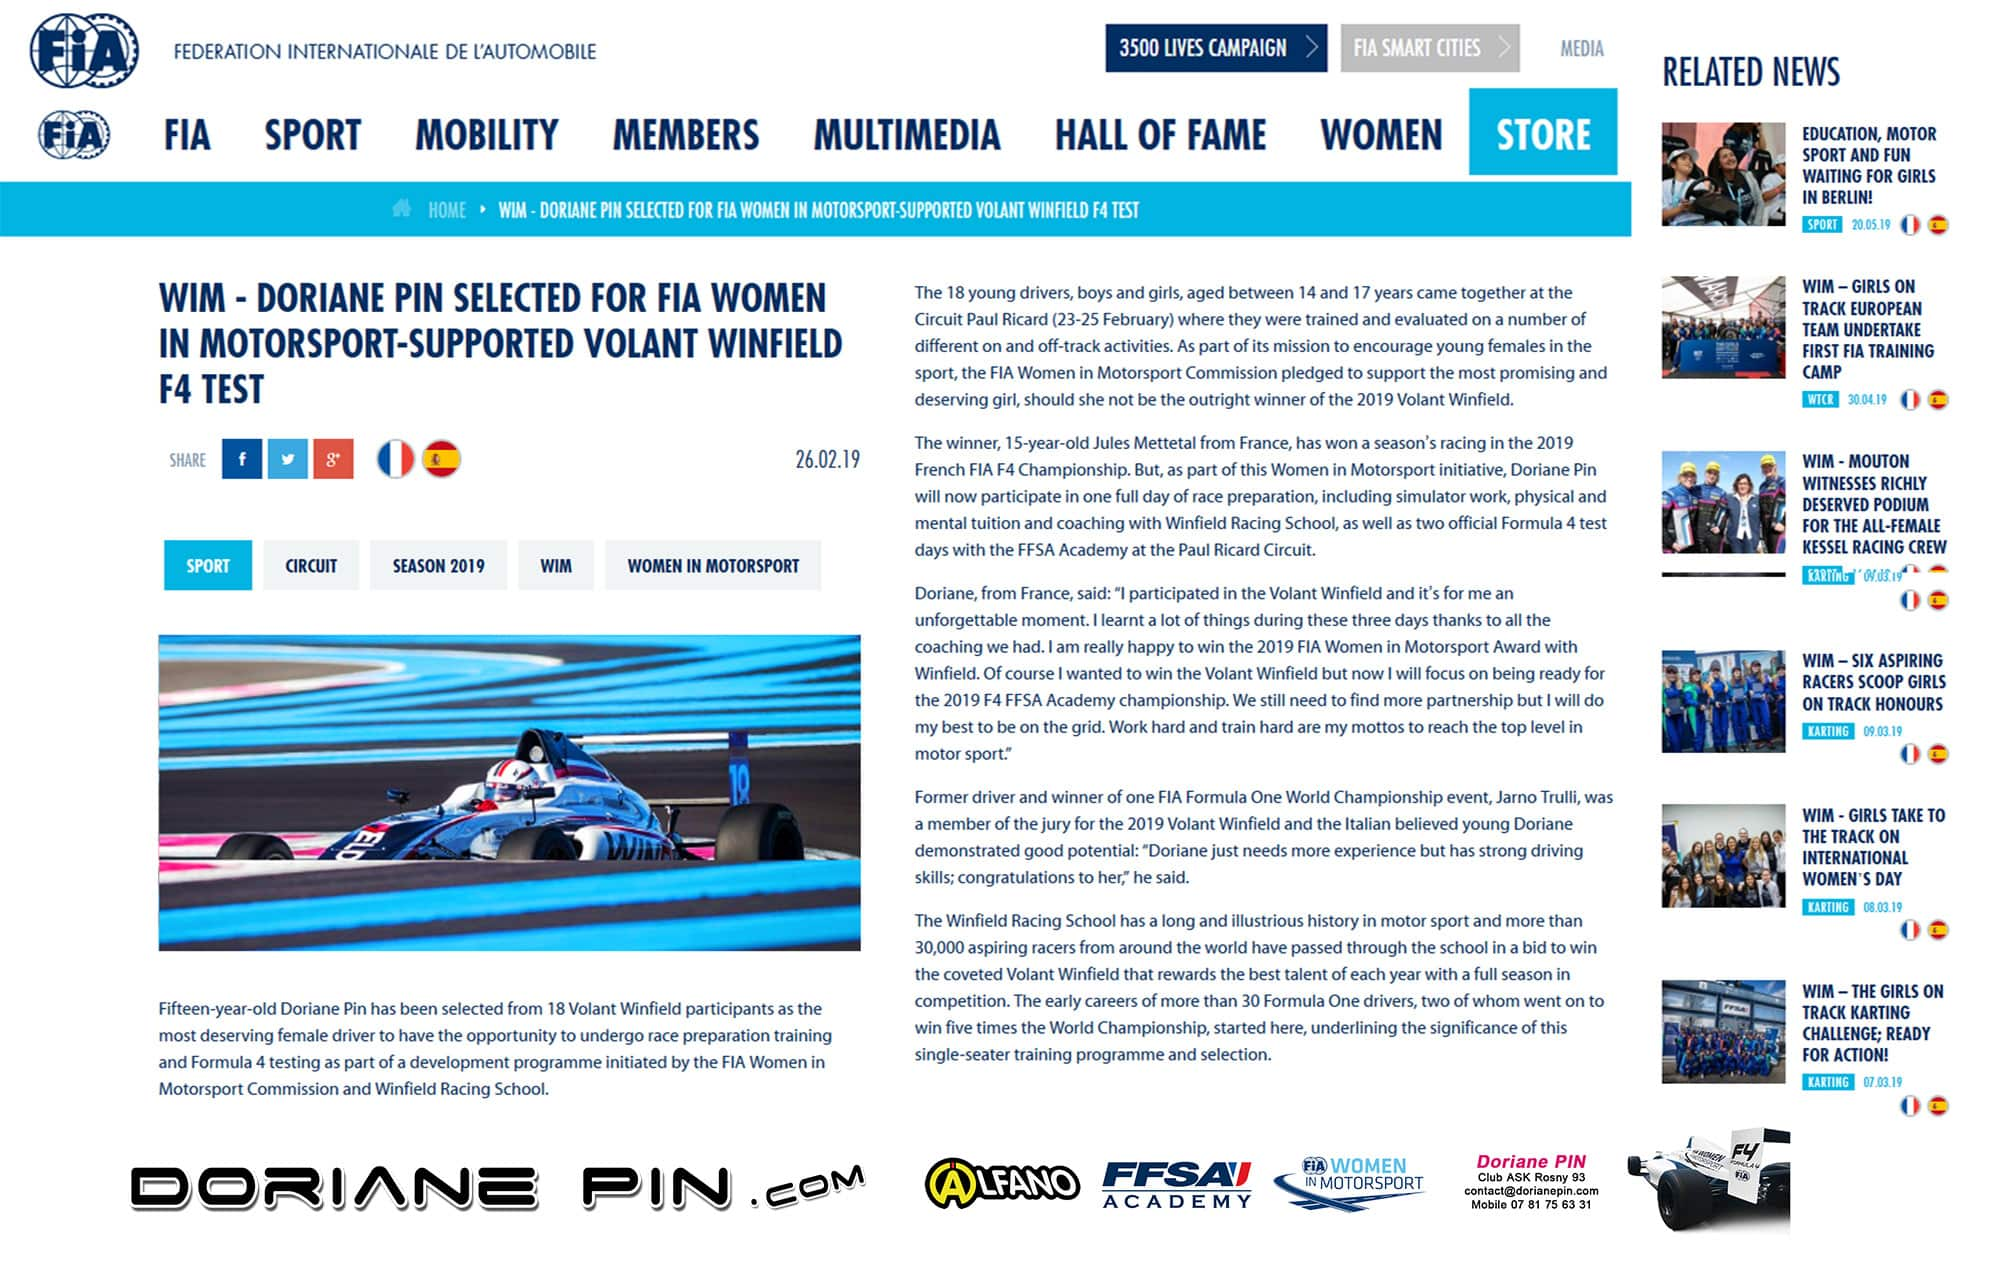 Doriane Pin selected for F4 test by FIA Women in Motorsport during Winfield contest